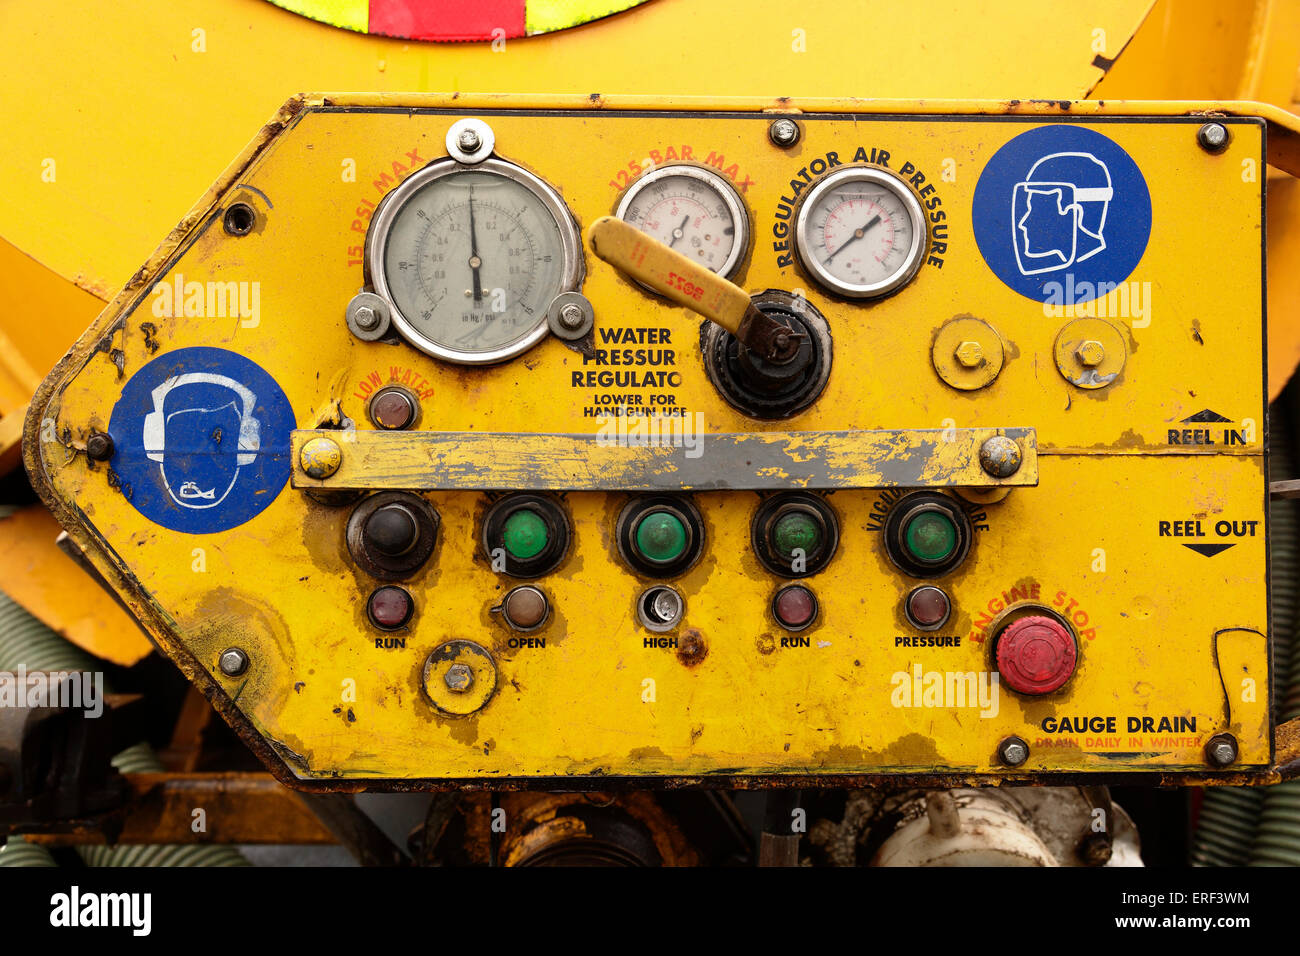 A old worn out control panel - Stock Image